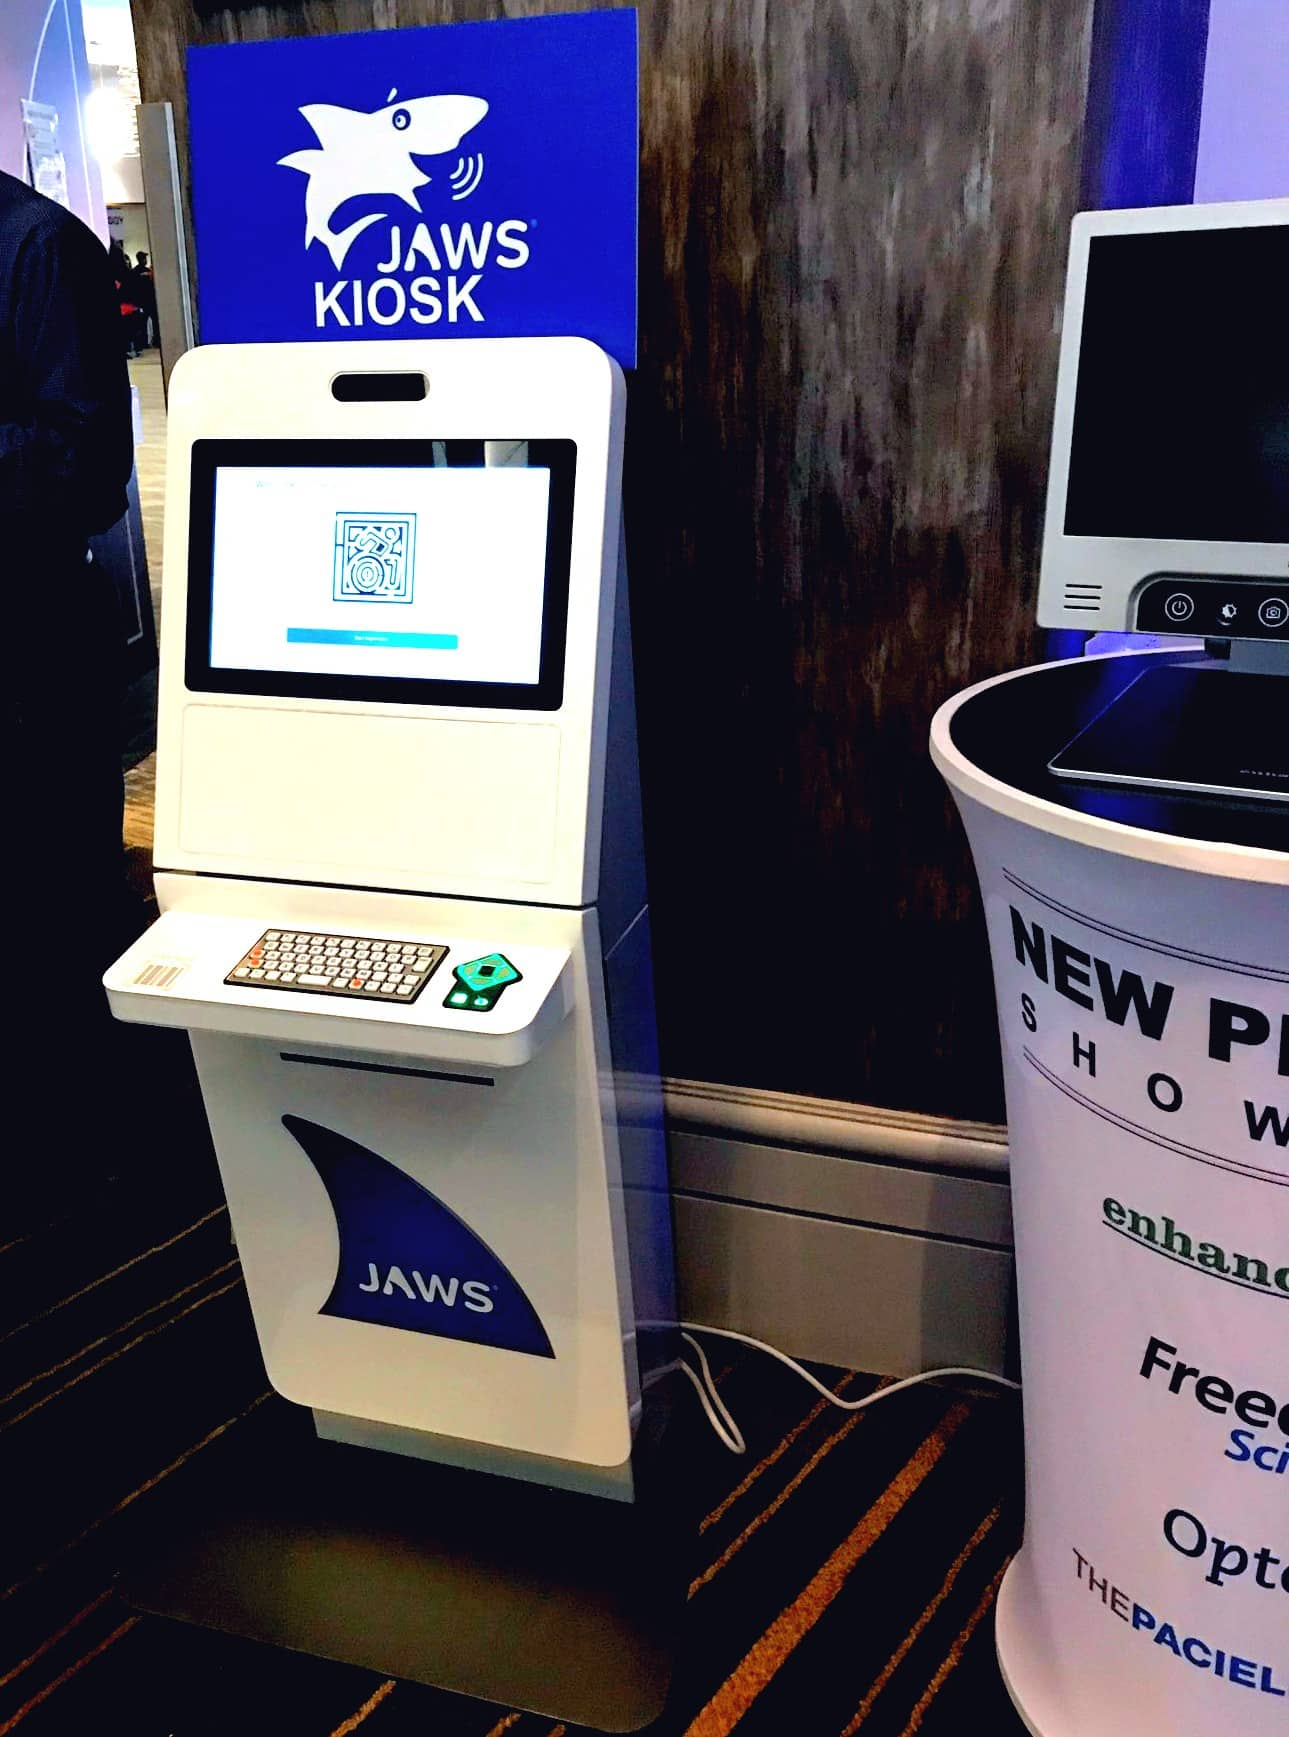 KIosk Meaning KIosk Definition What Is image - Courtesy JAWS Accessibility software Vispero and Olea Kiosks